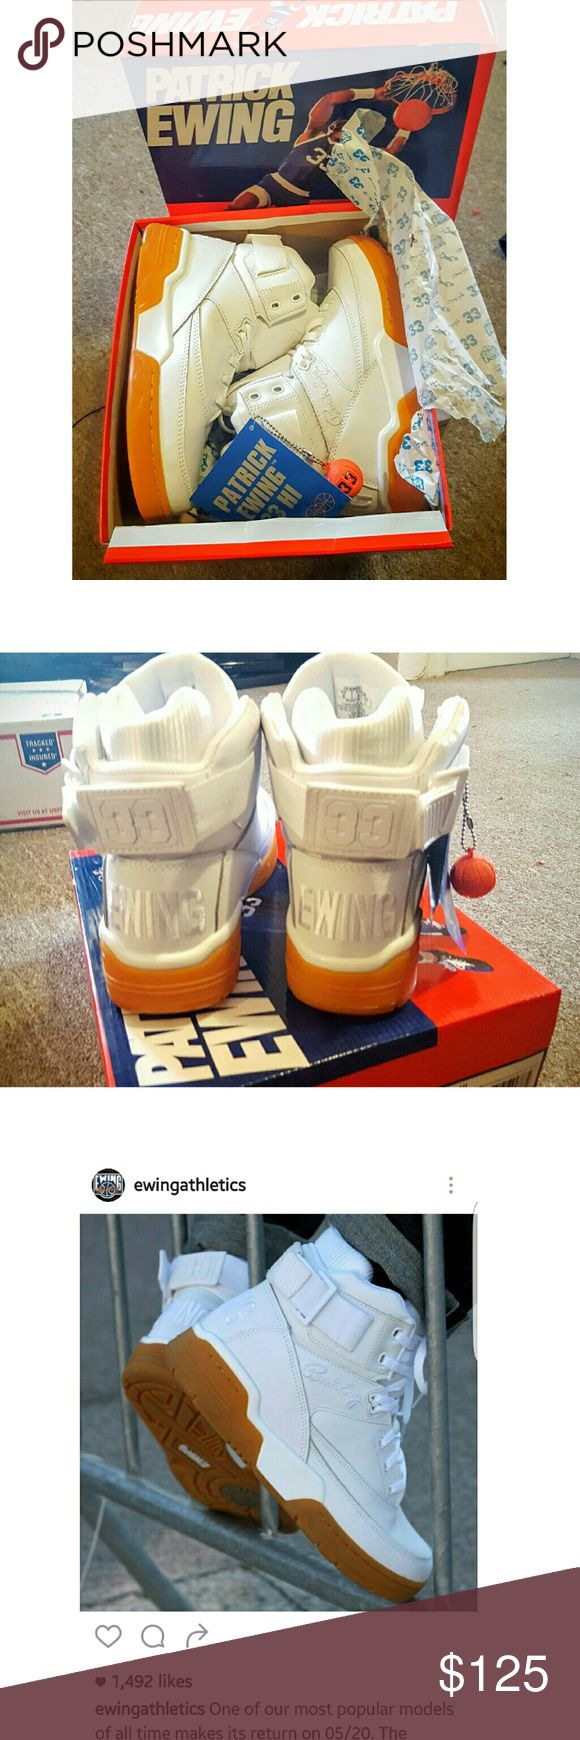 Patrick Ewing  33 Hi White gum Authenticbought them direct from flight club in NYC. Used one time only for 1 hour. Excellent condition Like new. If you have any  questions feel free to contact me!    Offers Welcome !   no trades Patrick Ewing  Shoes Sneakers